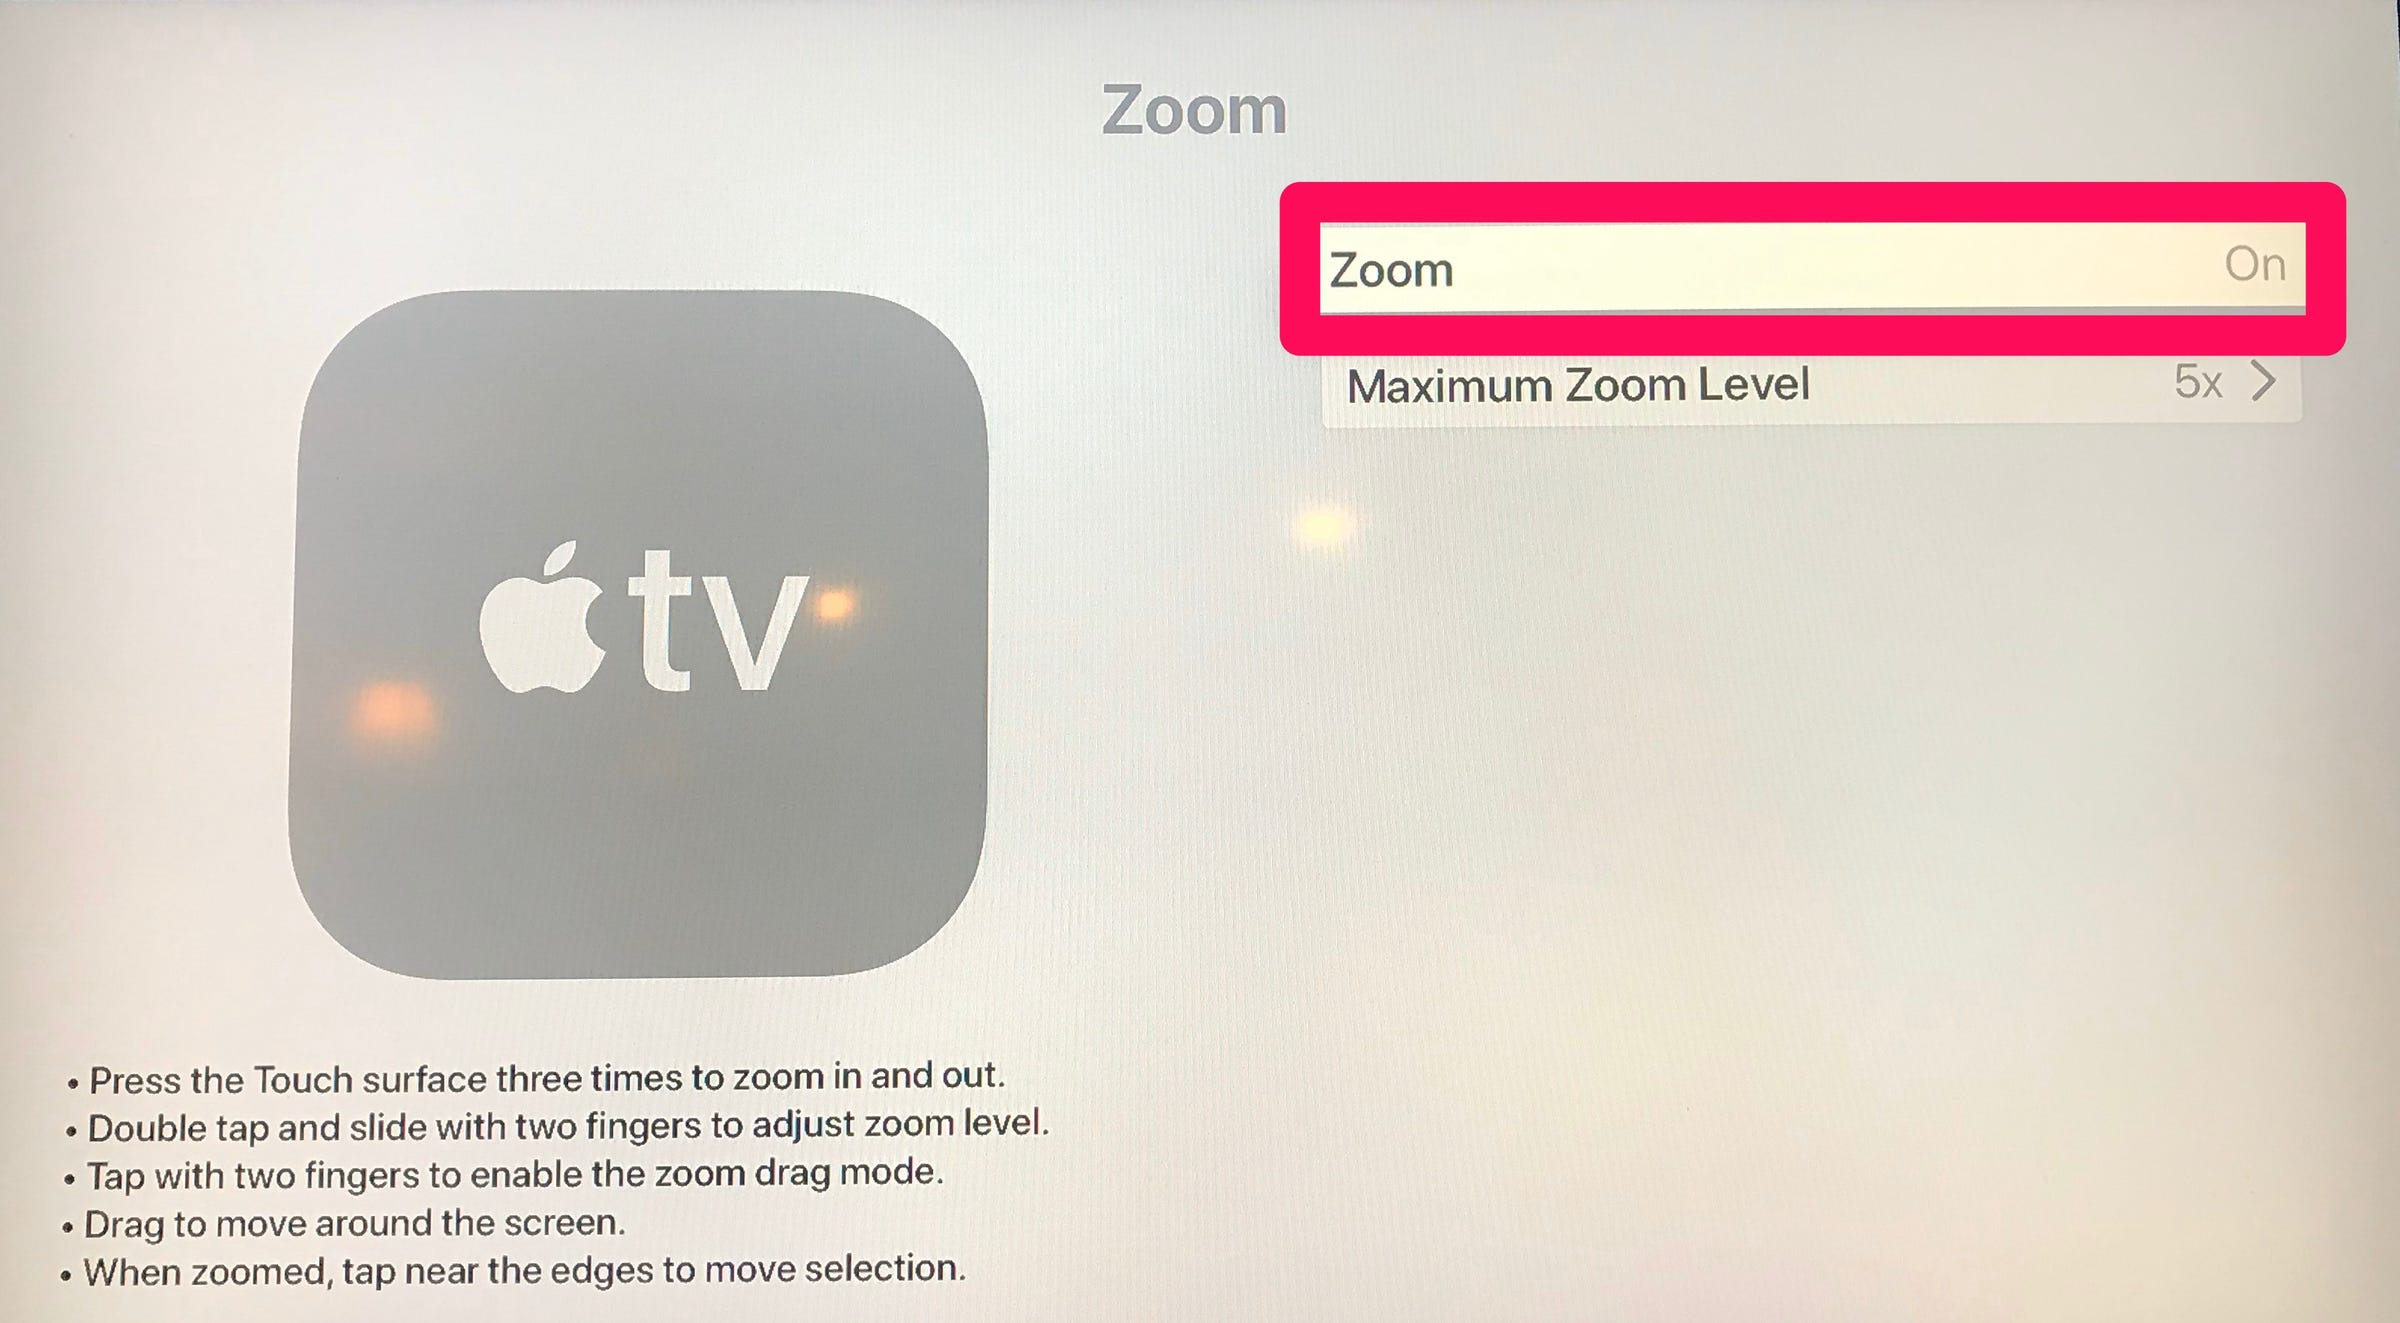 How to zoom out on Apple TV